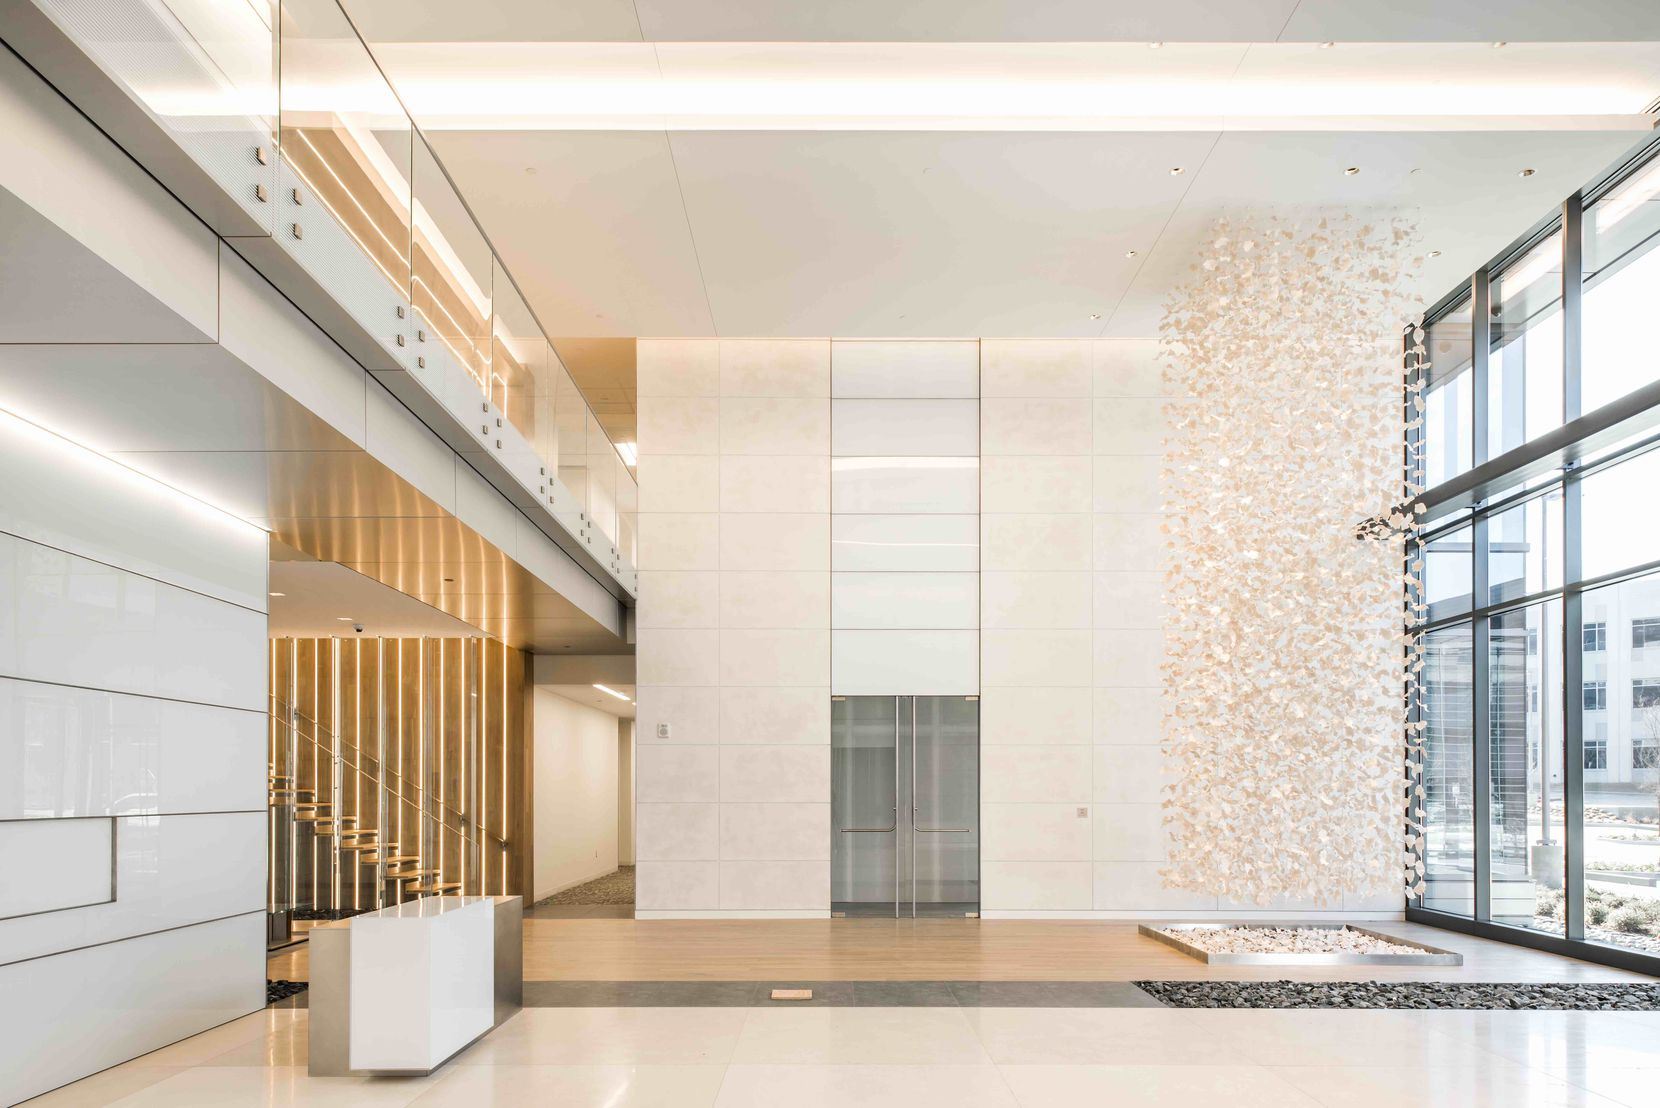 The 3201 Dallas Parkway tower has 300,000 square feet of office space.